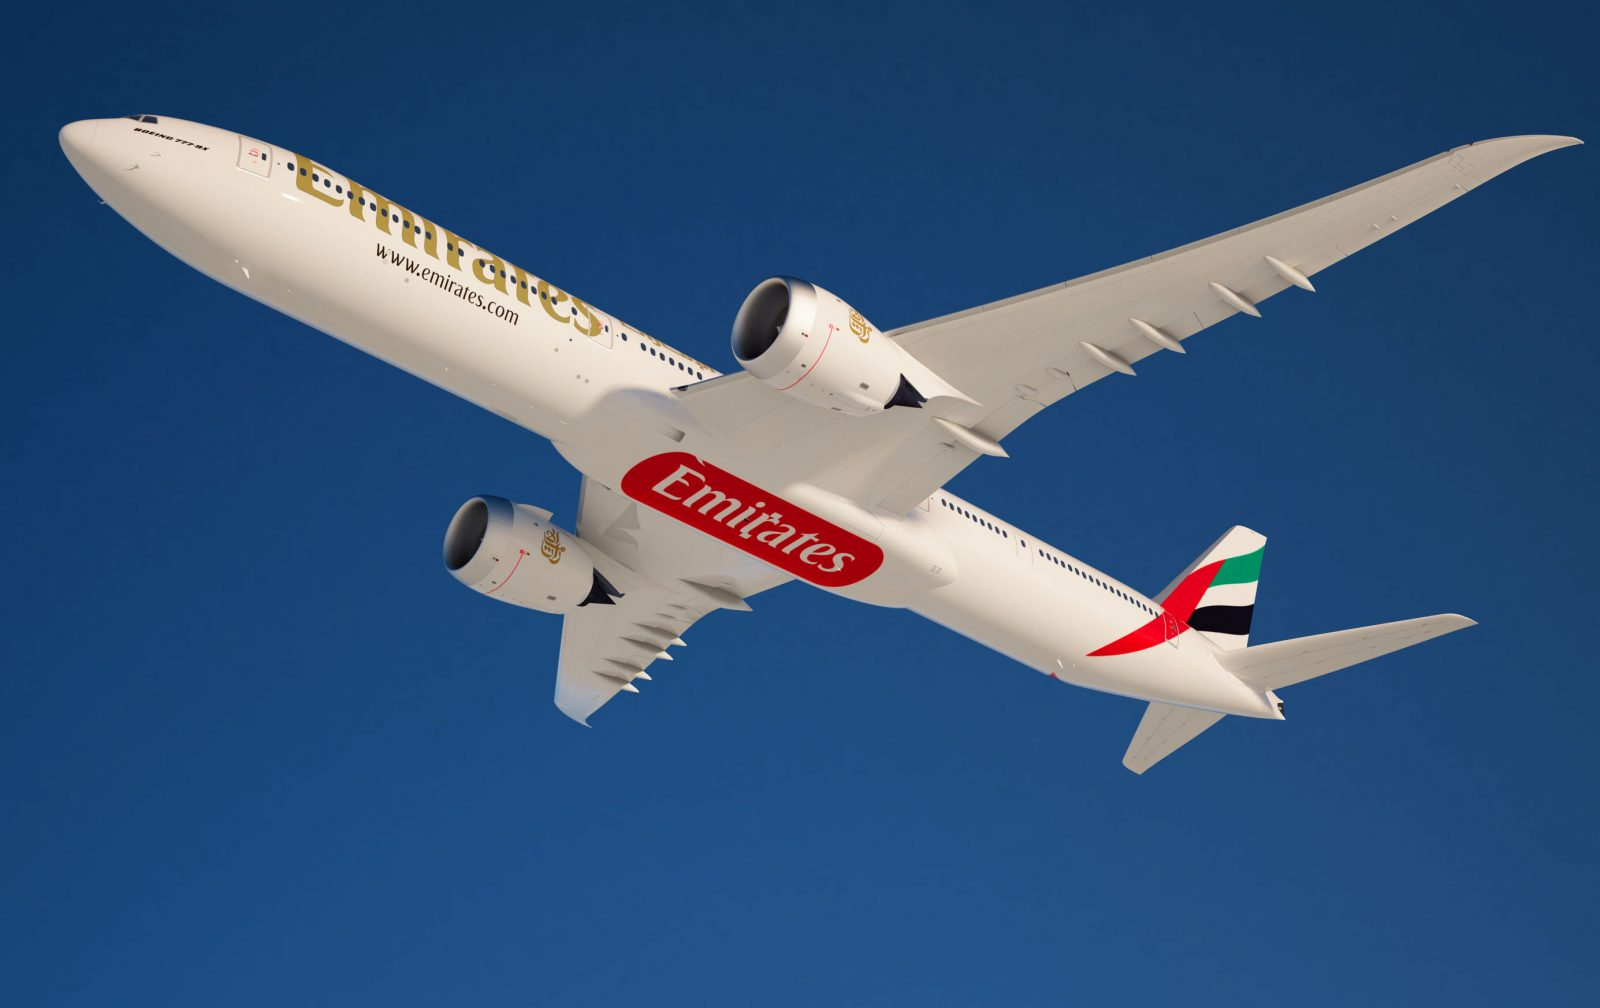 Emirates Pushes Back First Delivery of Brand New Boeing 777X Until 2021 at the Earliest